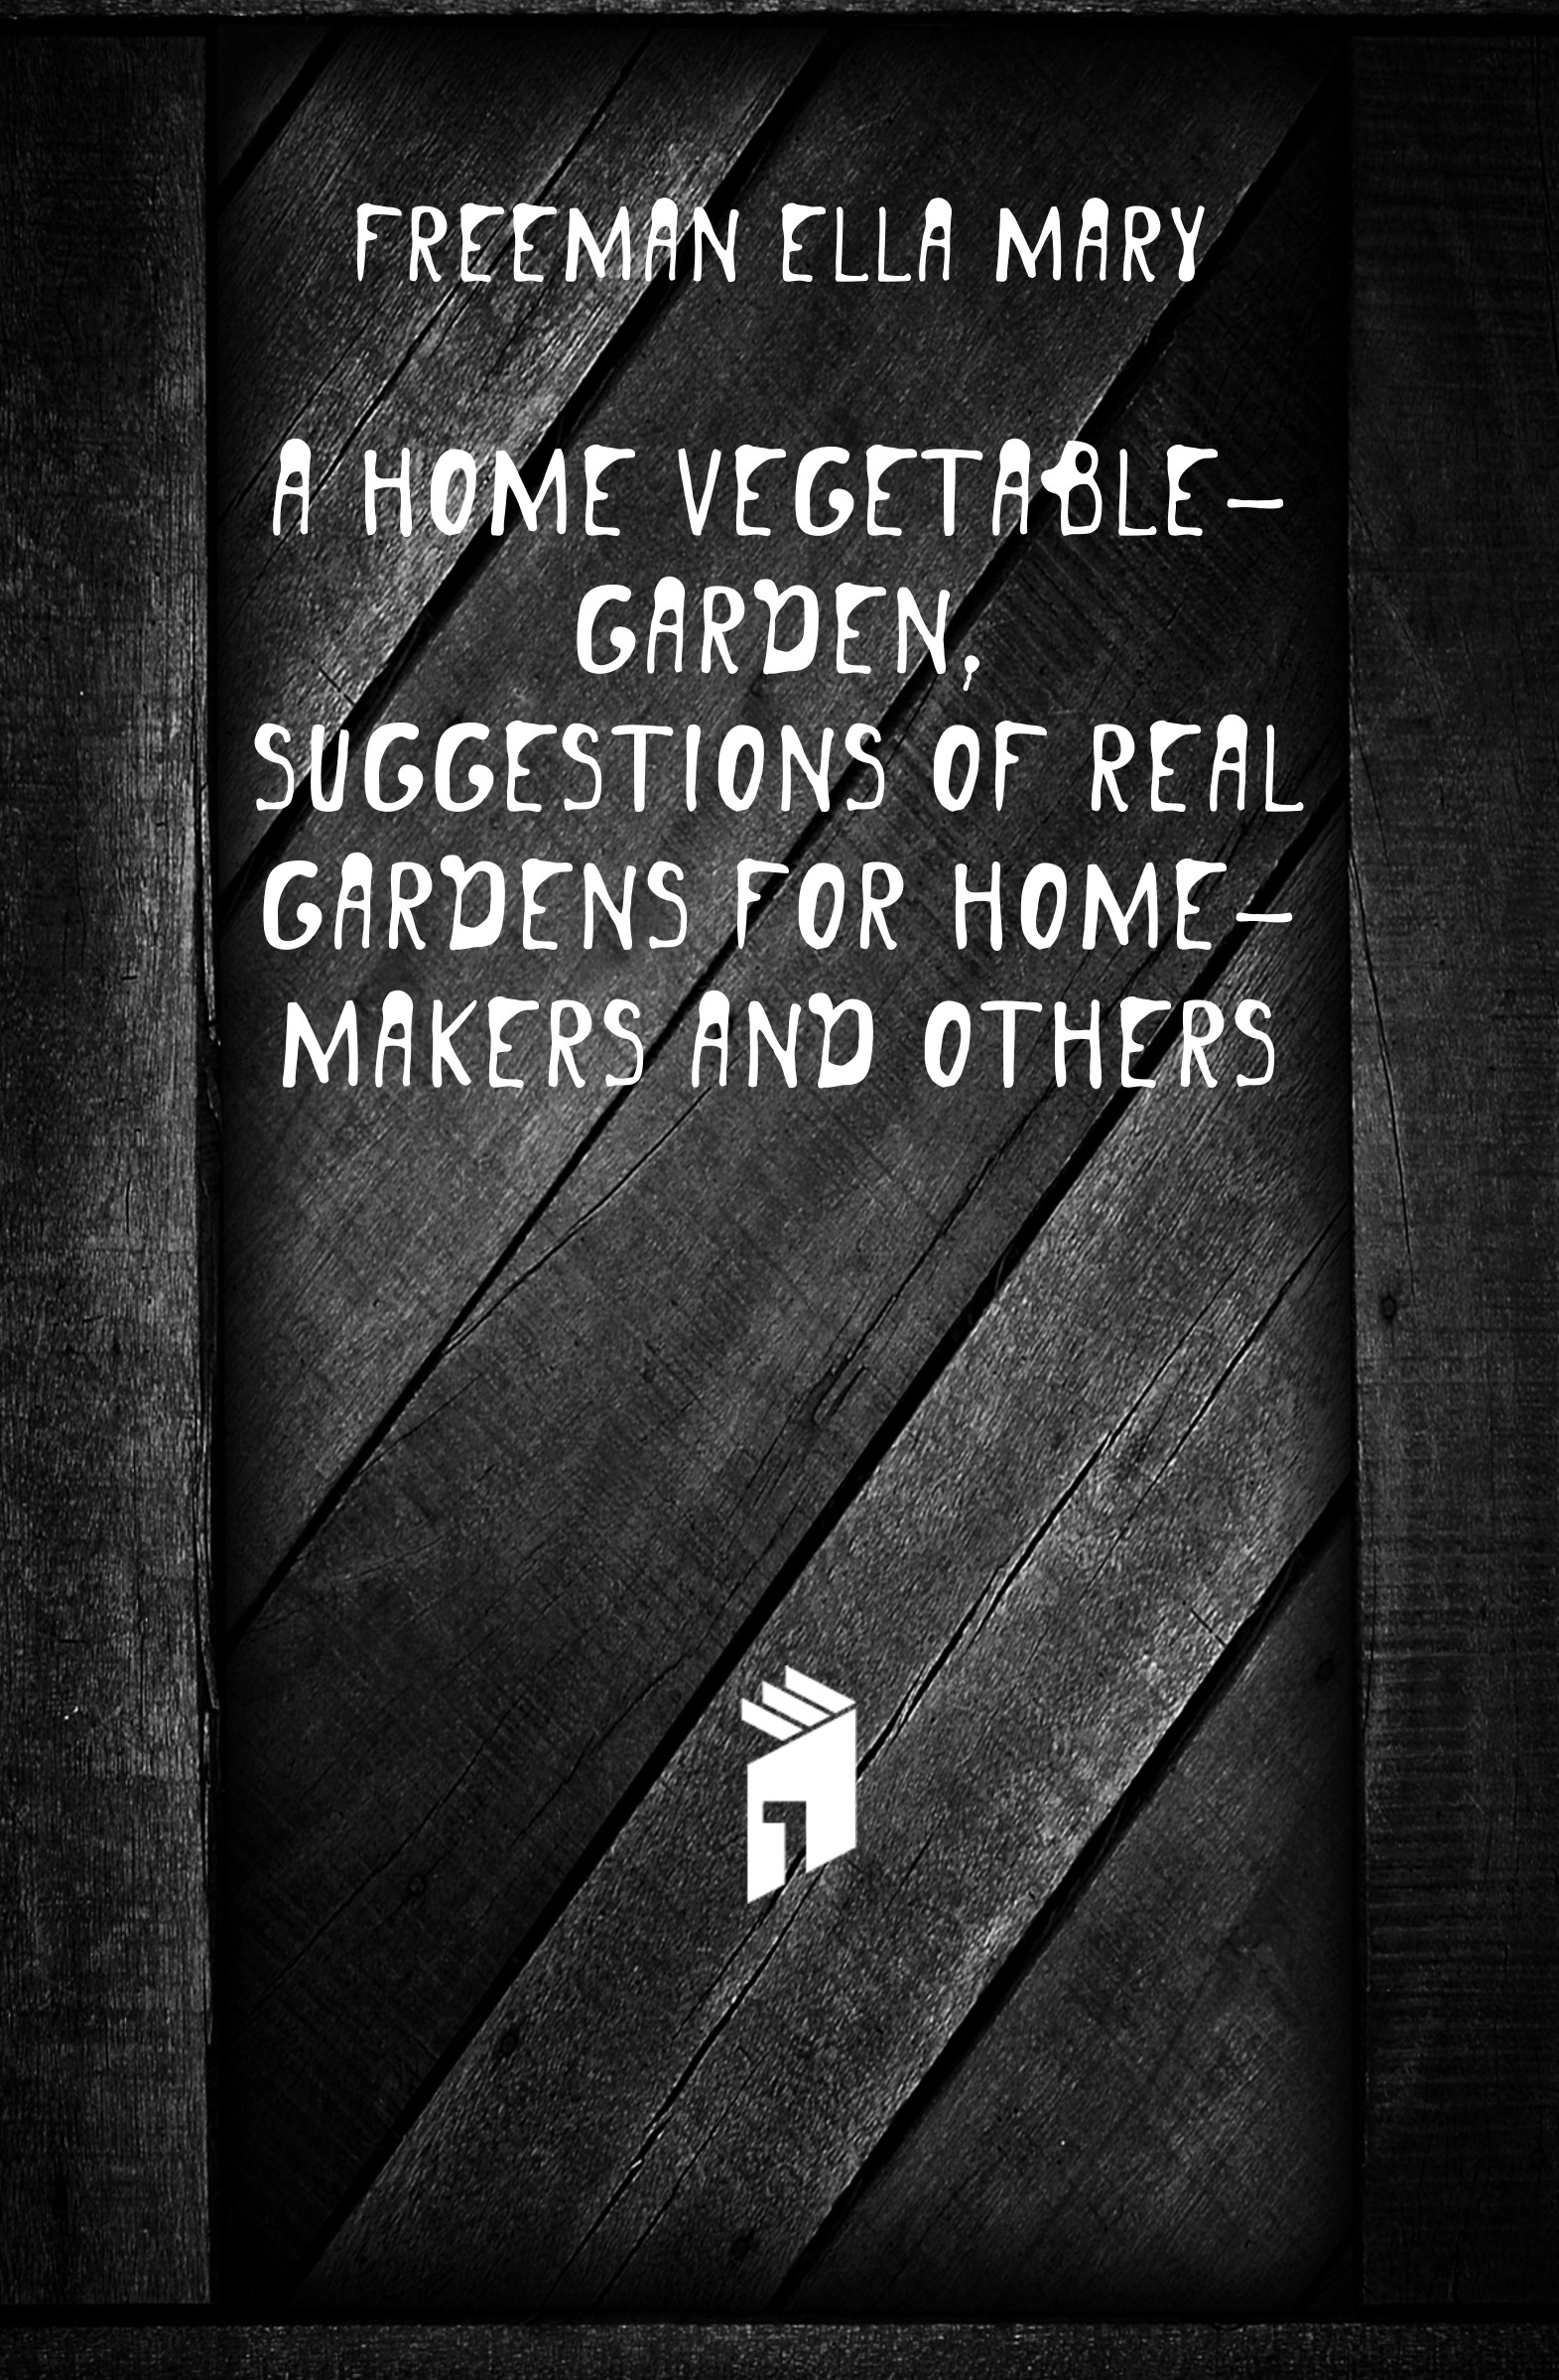 Freeman Ella Mary A home vegetable-garden, suggestions of real gardens for home-makers and others